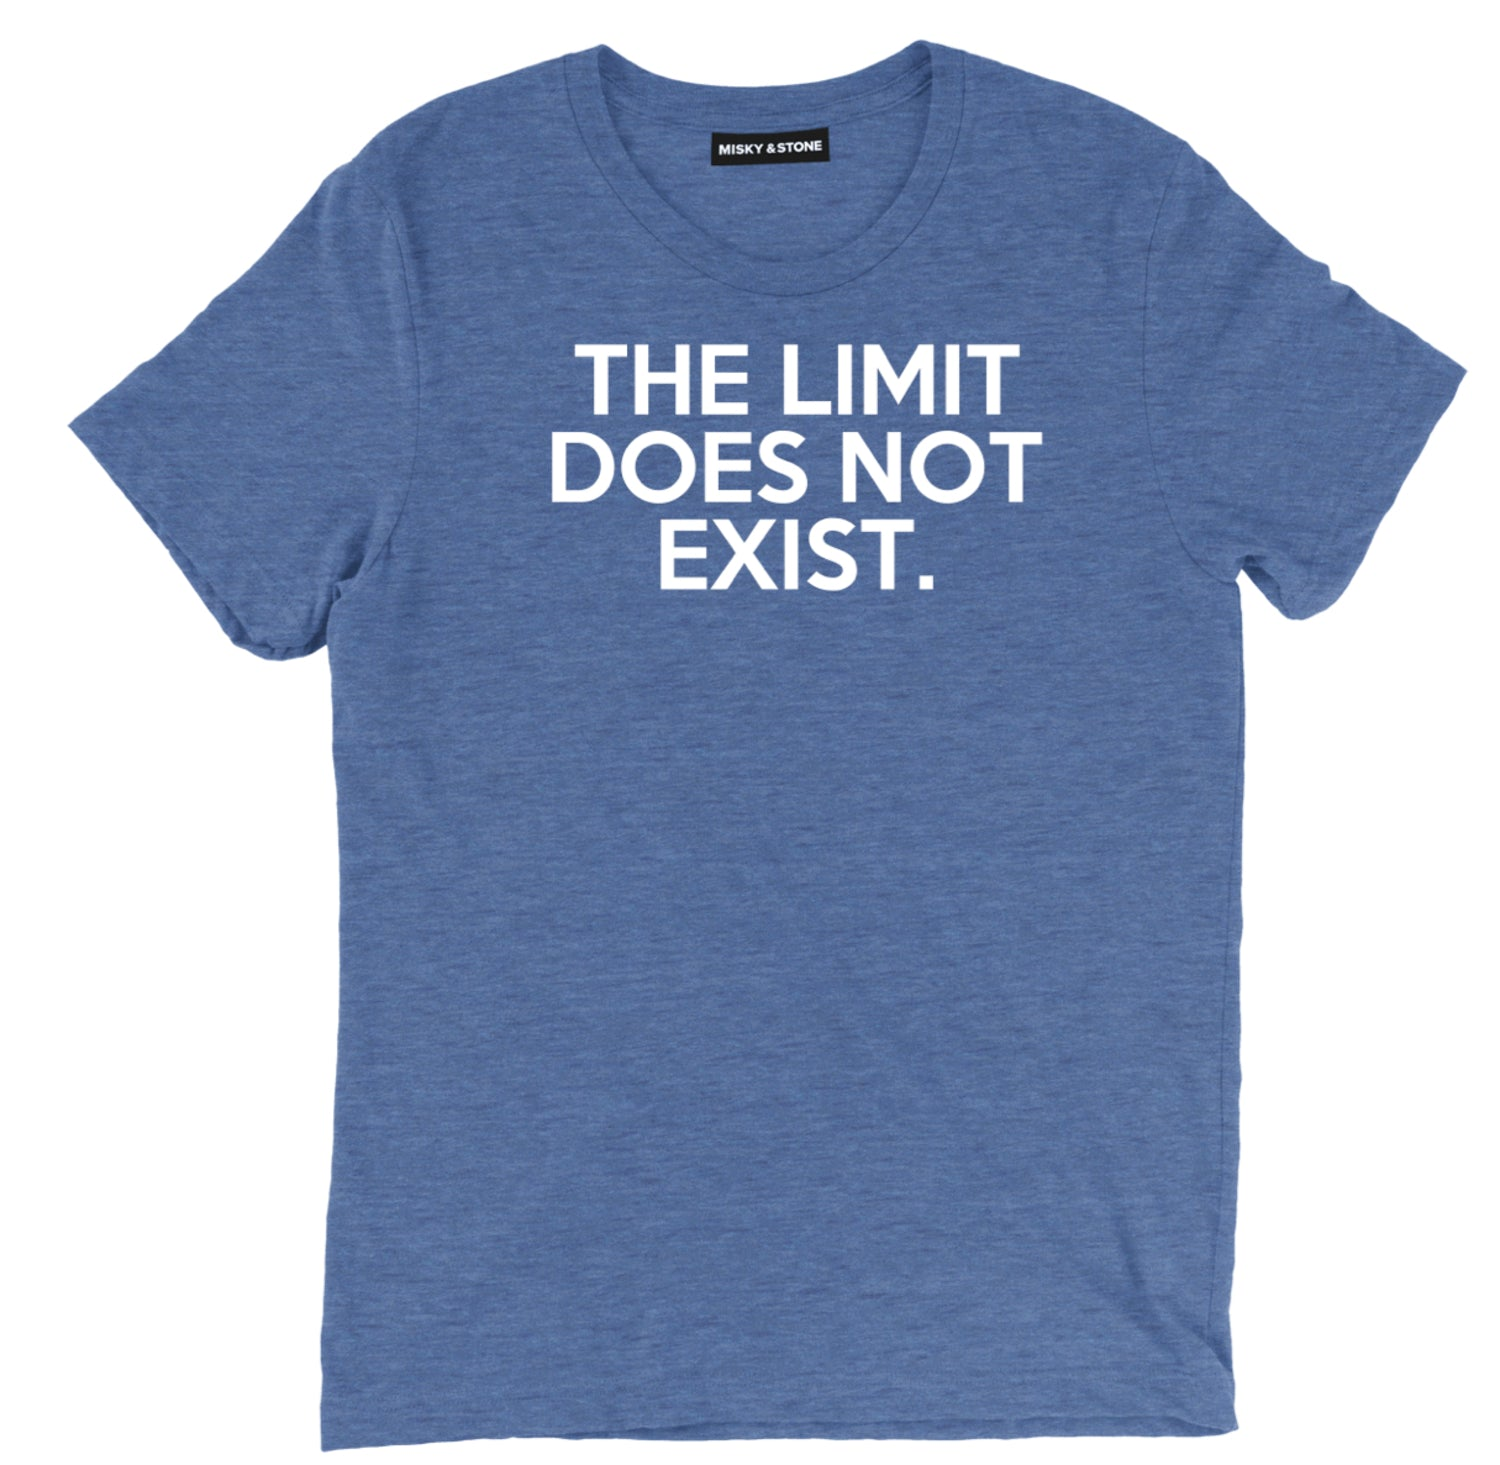 the limit does not exist t shirt, funny the limit does not exist tee, nerdy the limit does not exist mean girls t shirt,